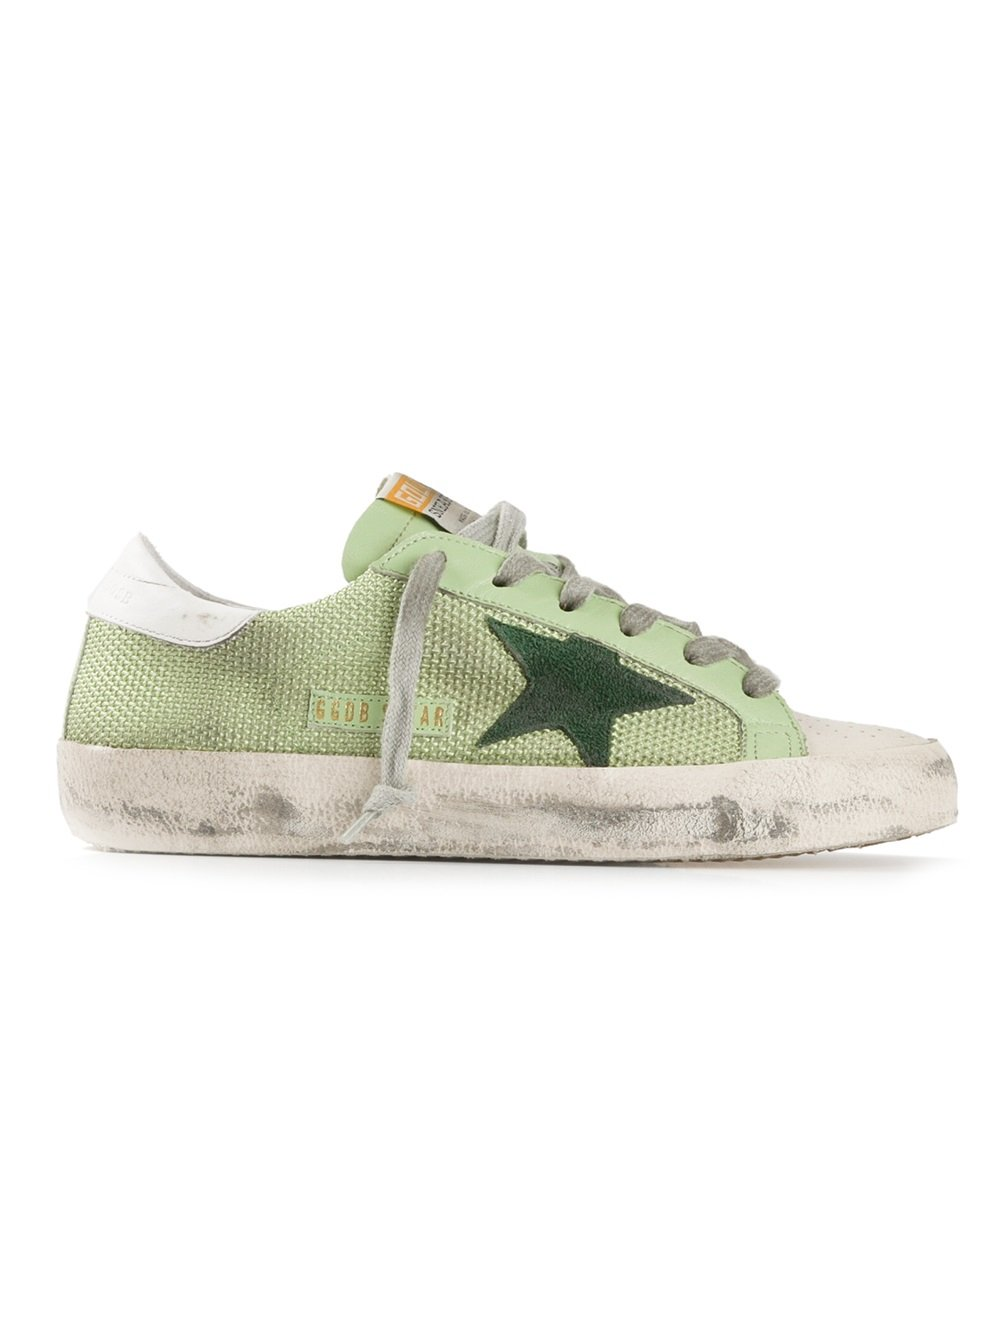 lyst golden goose deluxe brand star sneakers in green. Black Bedroom Furniture Sets. Home Design Ideas